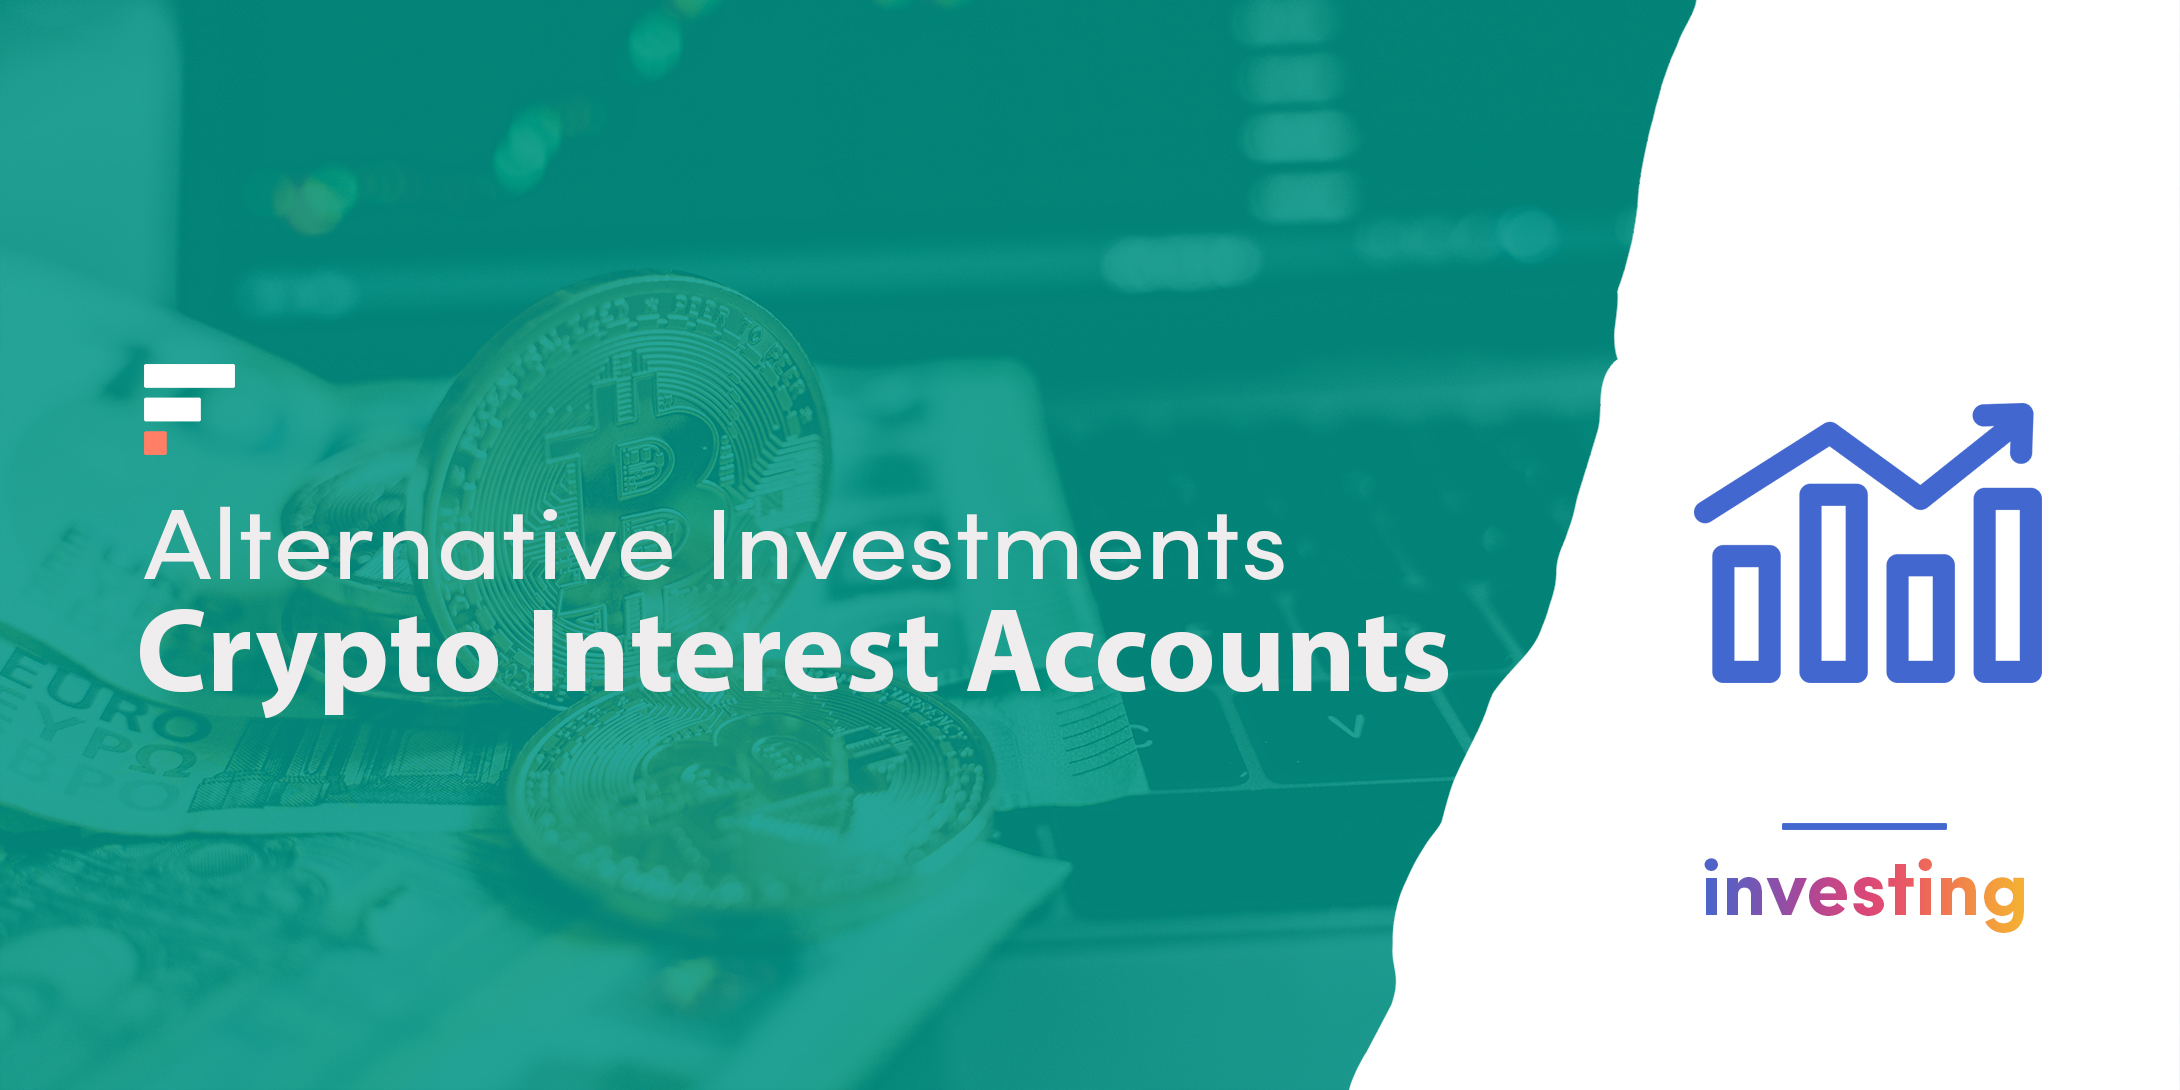 Alternative Investments: Crypto Interest Accounts